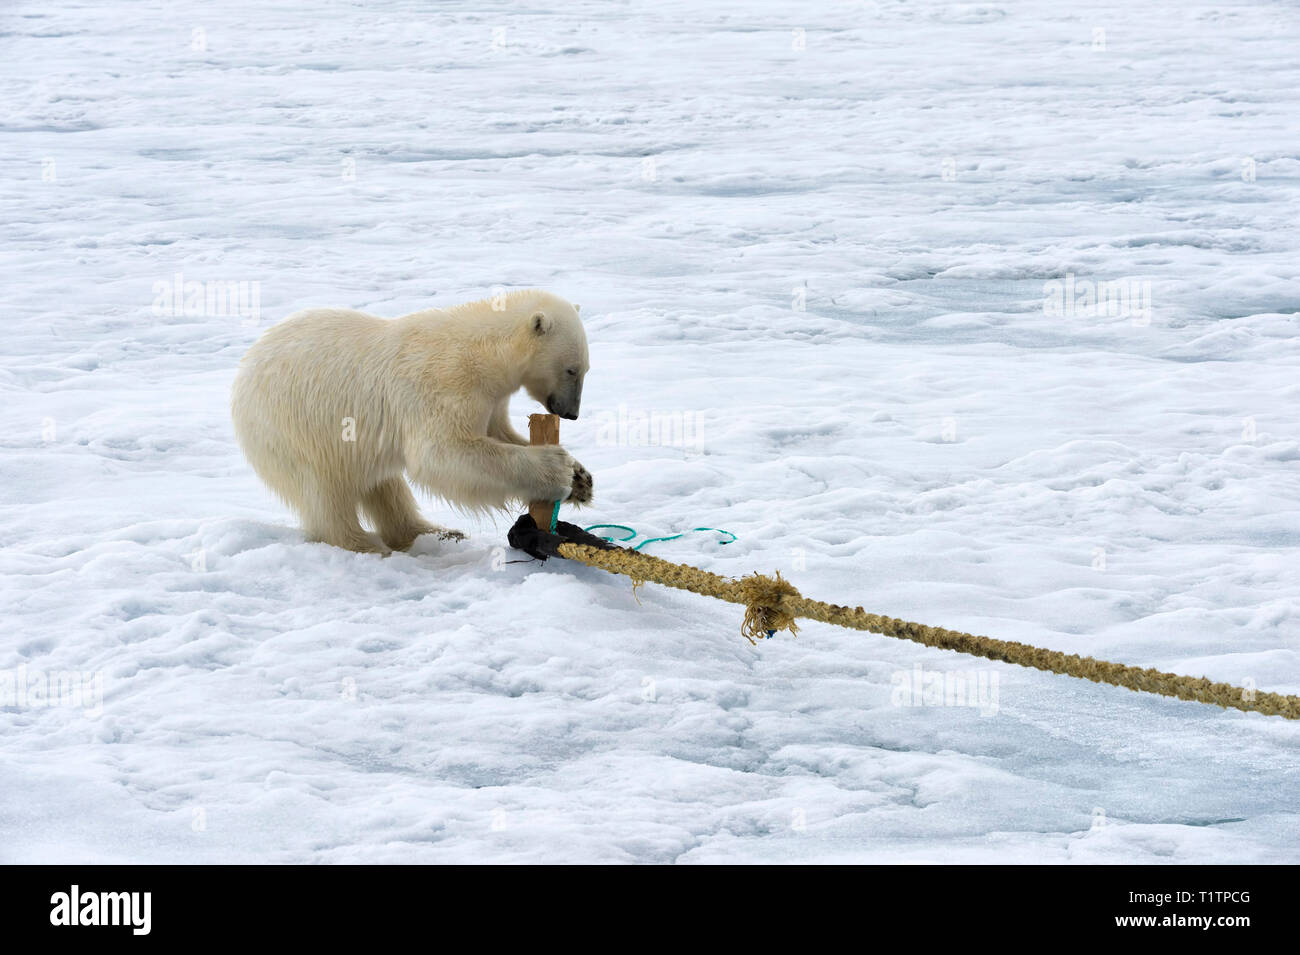 Polar Bear (Ursus maritimus) inspecting rope and chewing on pole of expedition ship, Svalbard Archipelago, Norway - Stock Image